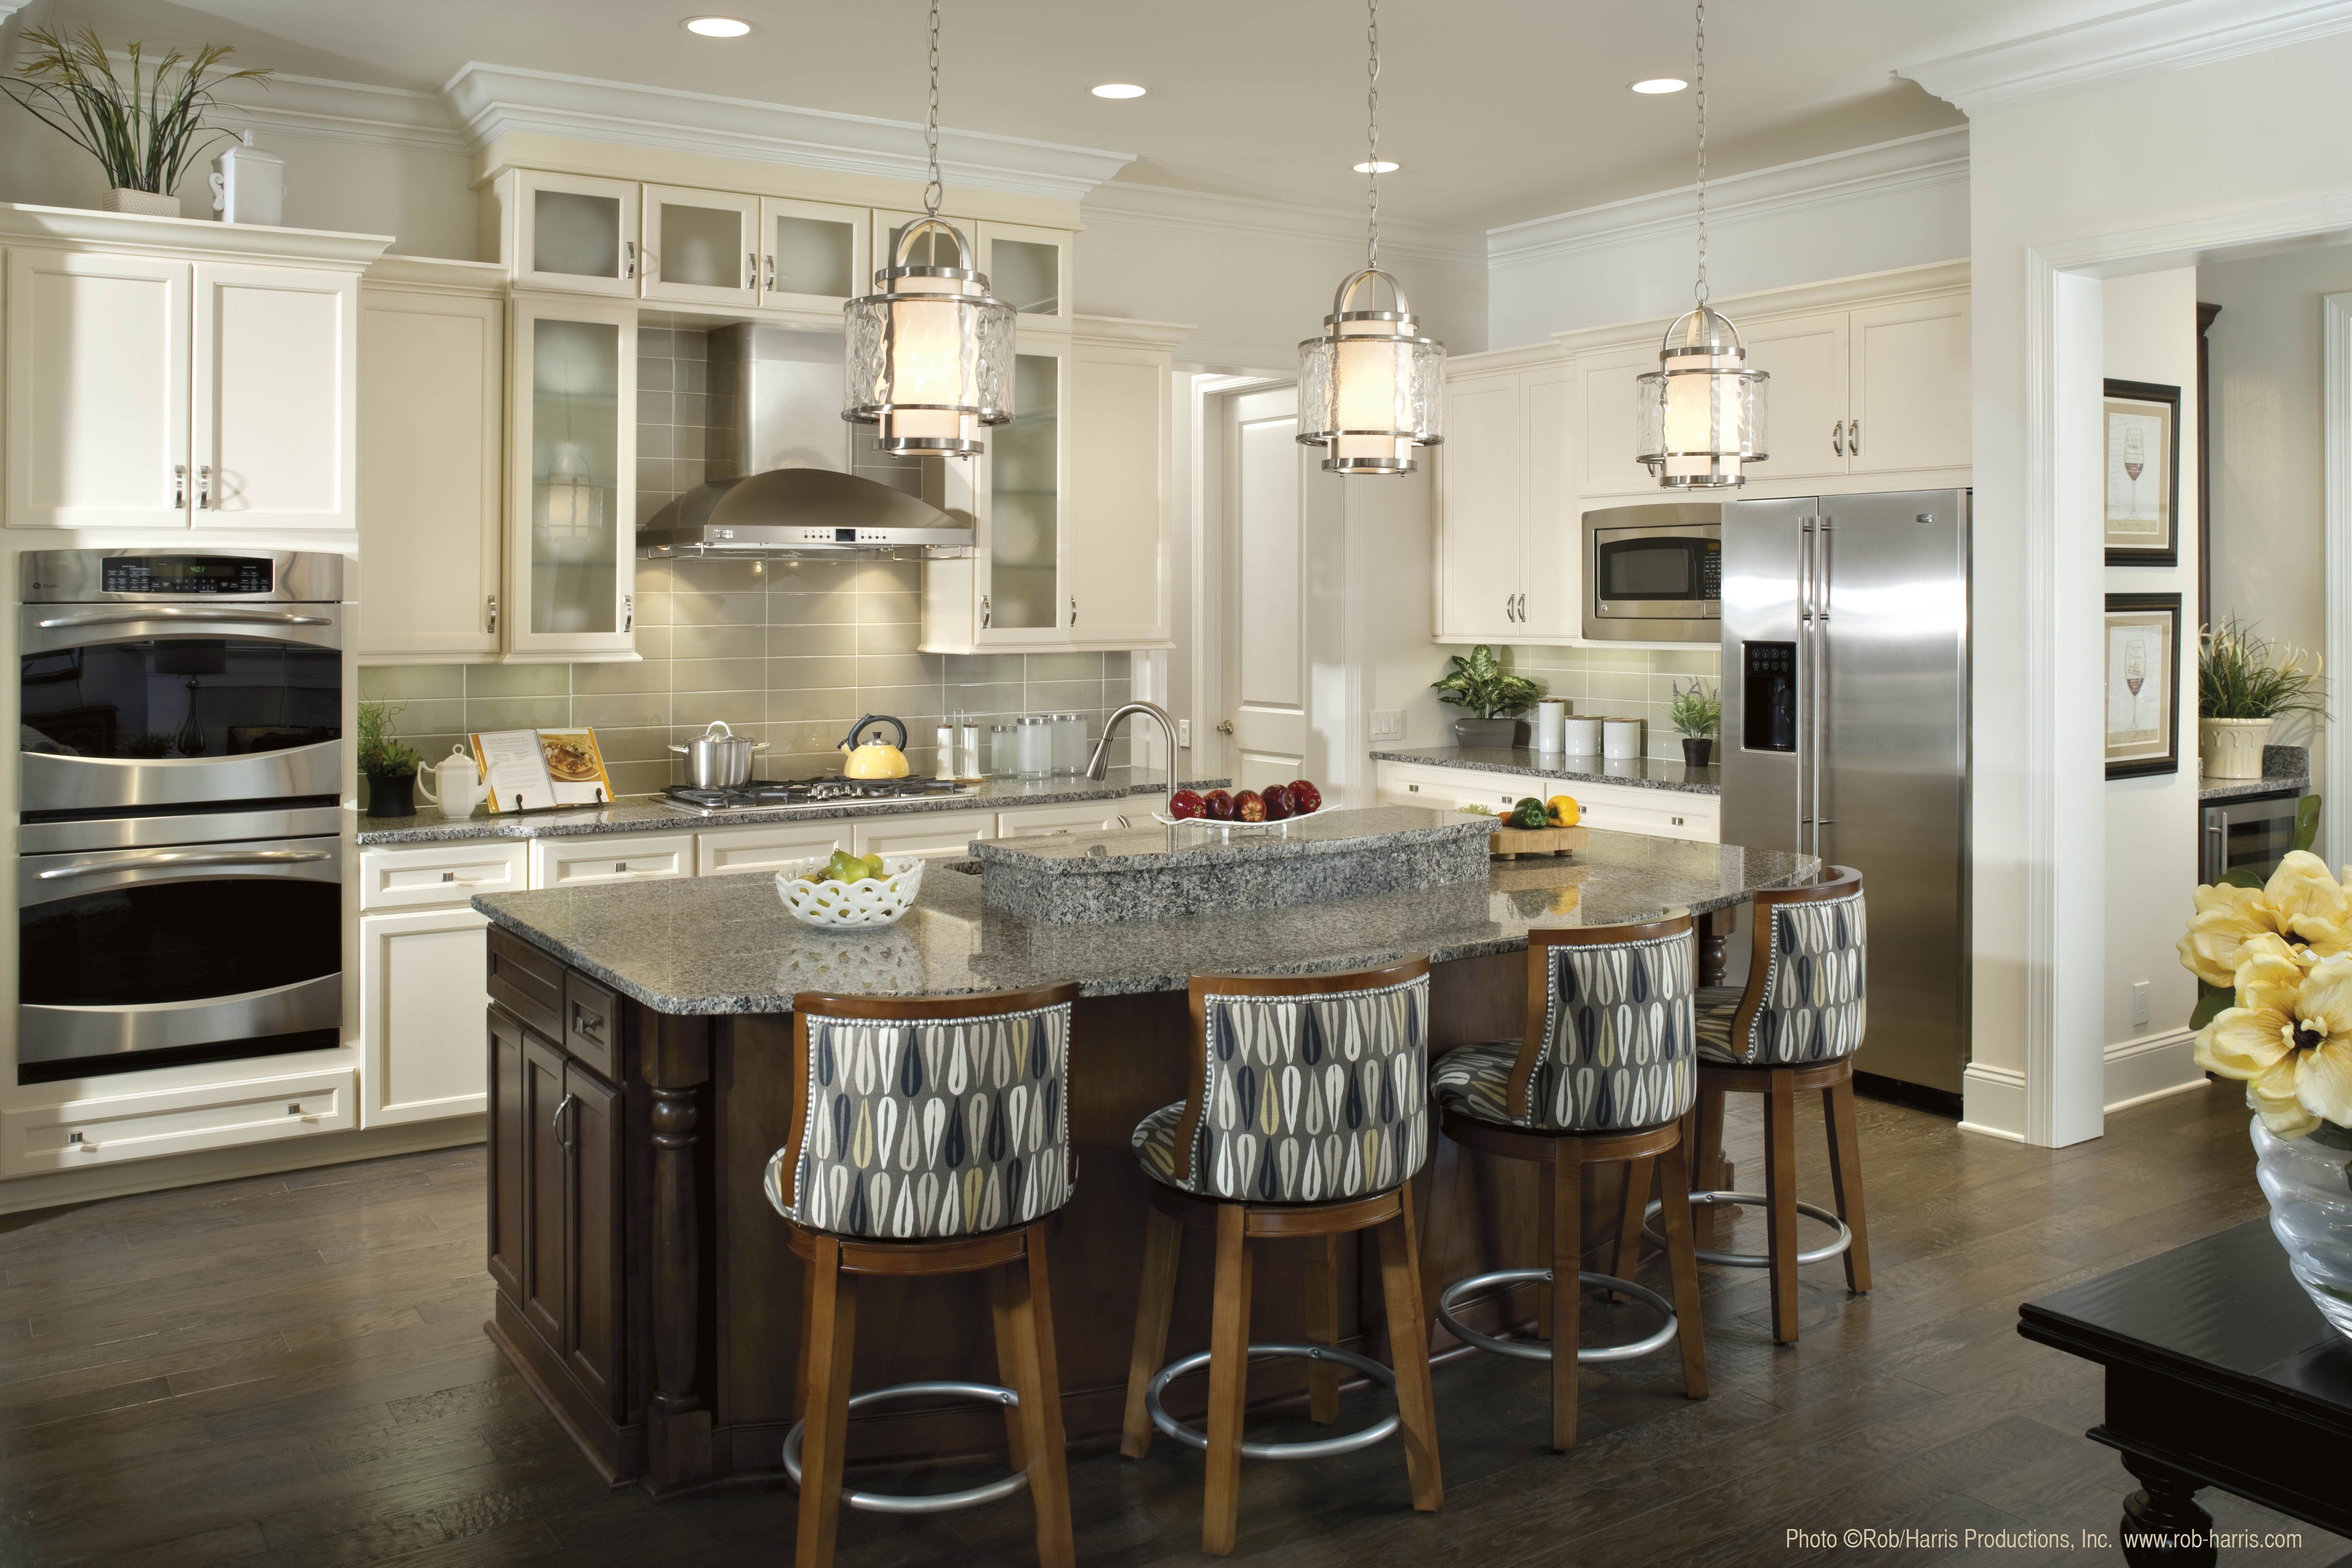 Permalink to Awesome Kitchen island Pendant Lighting Ideas